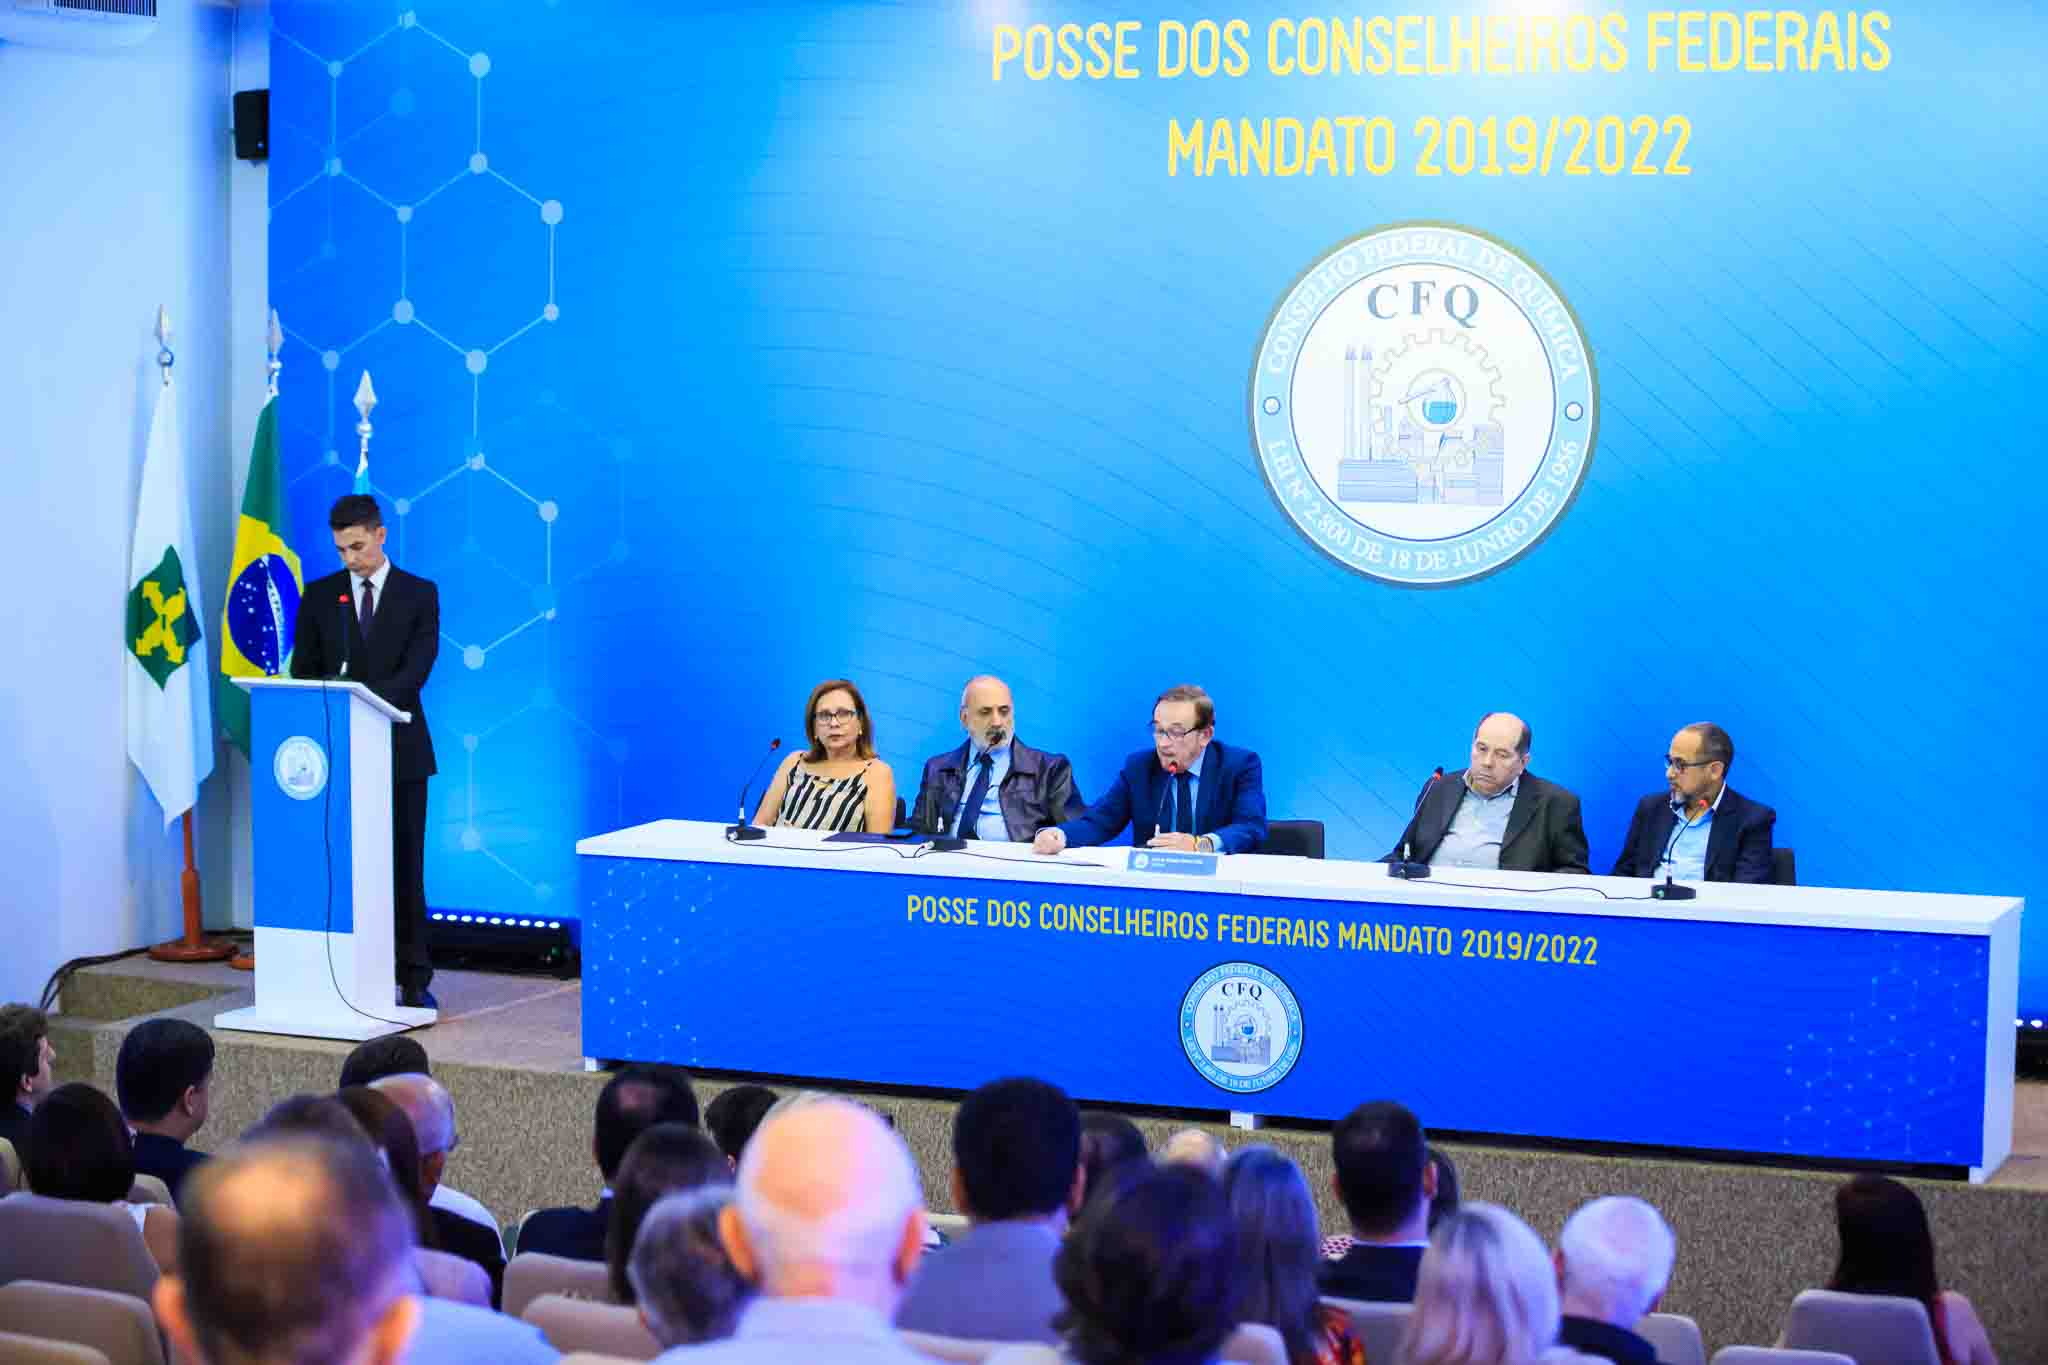 Conselheiros do mandato 2019/2022 tomam posse no CFQ